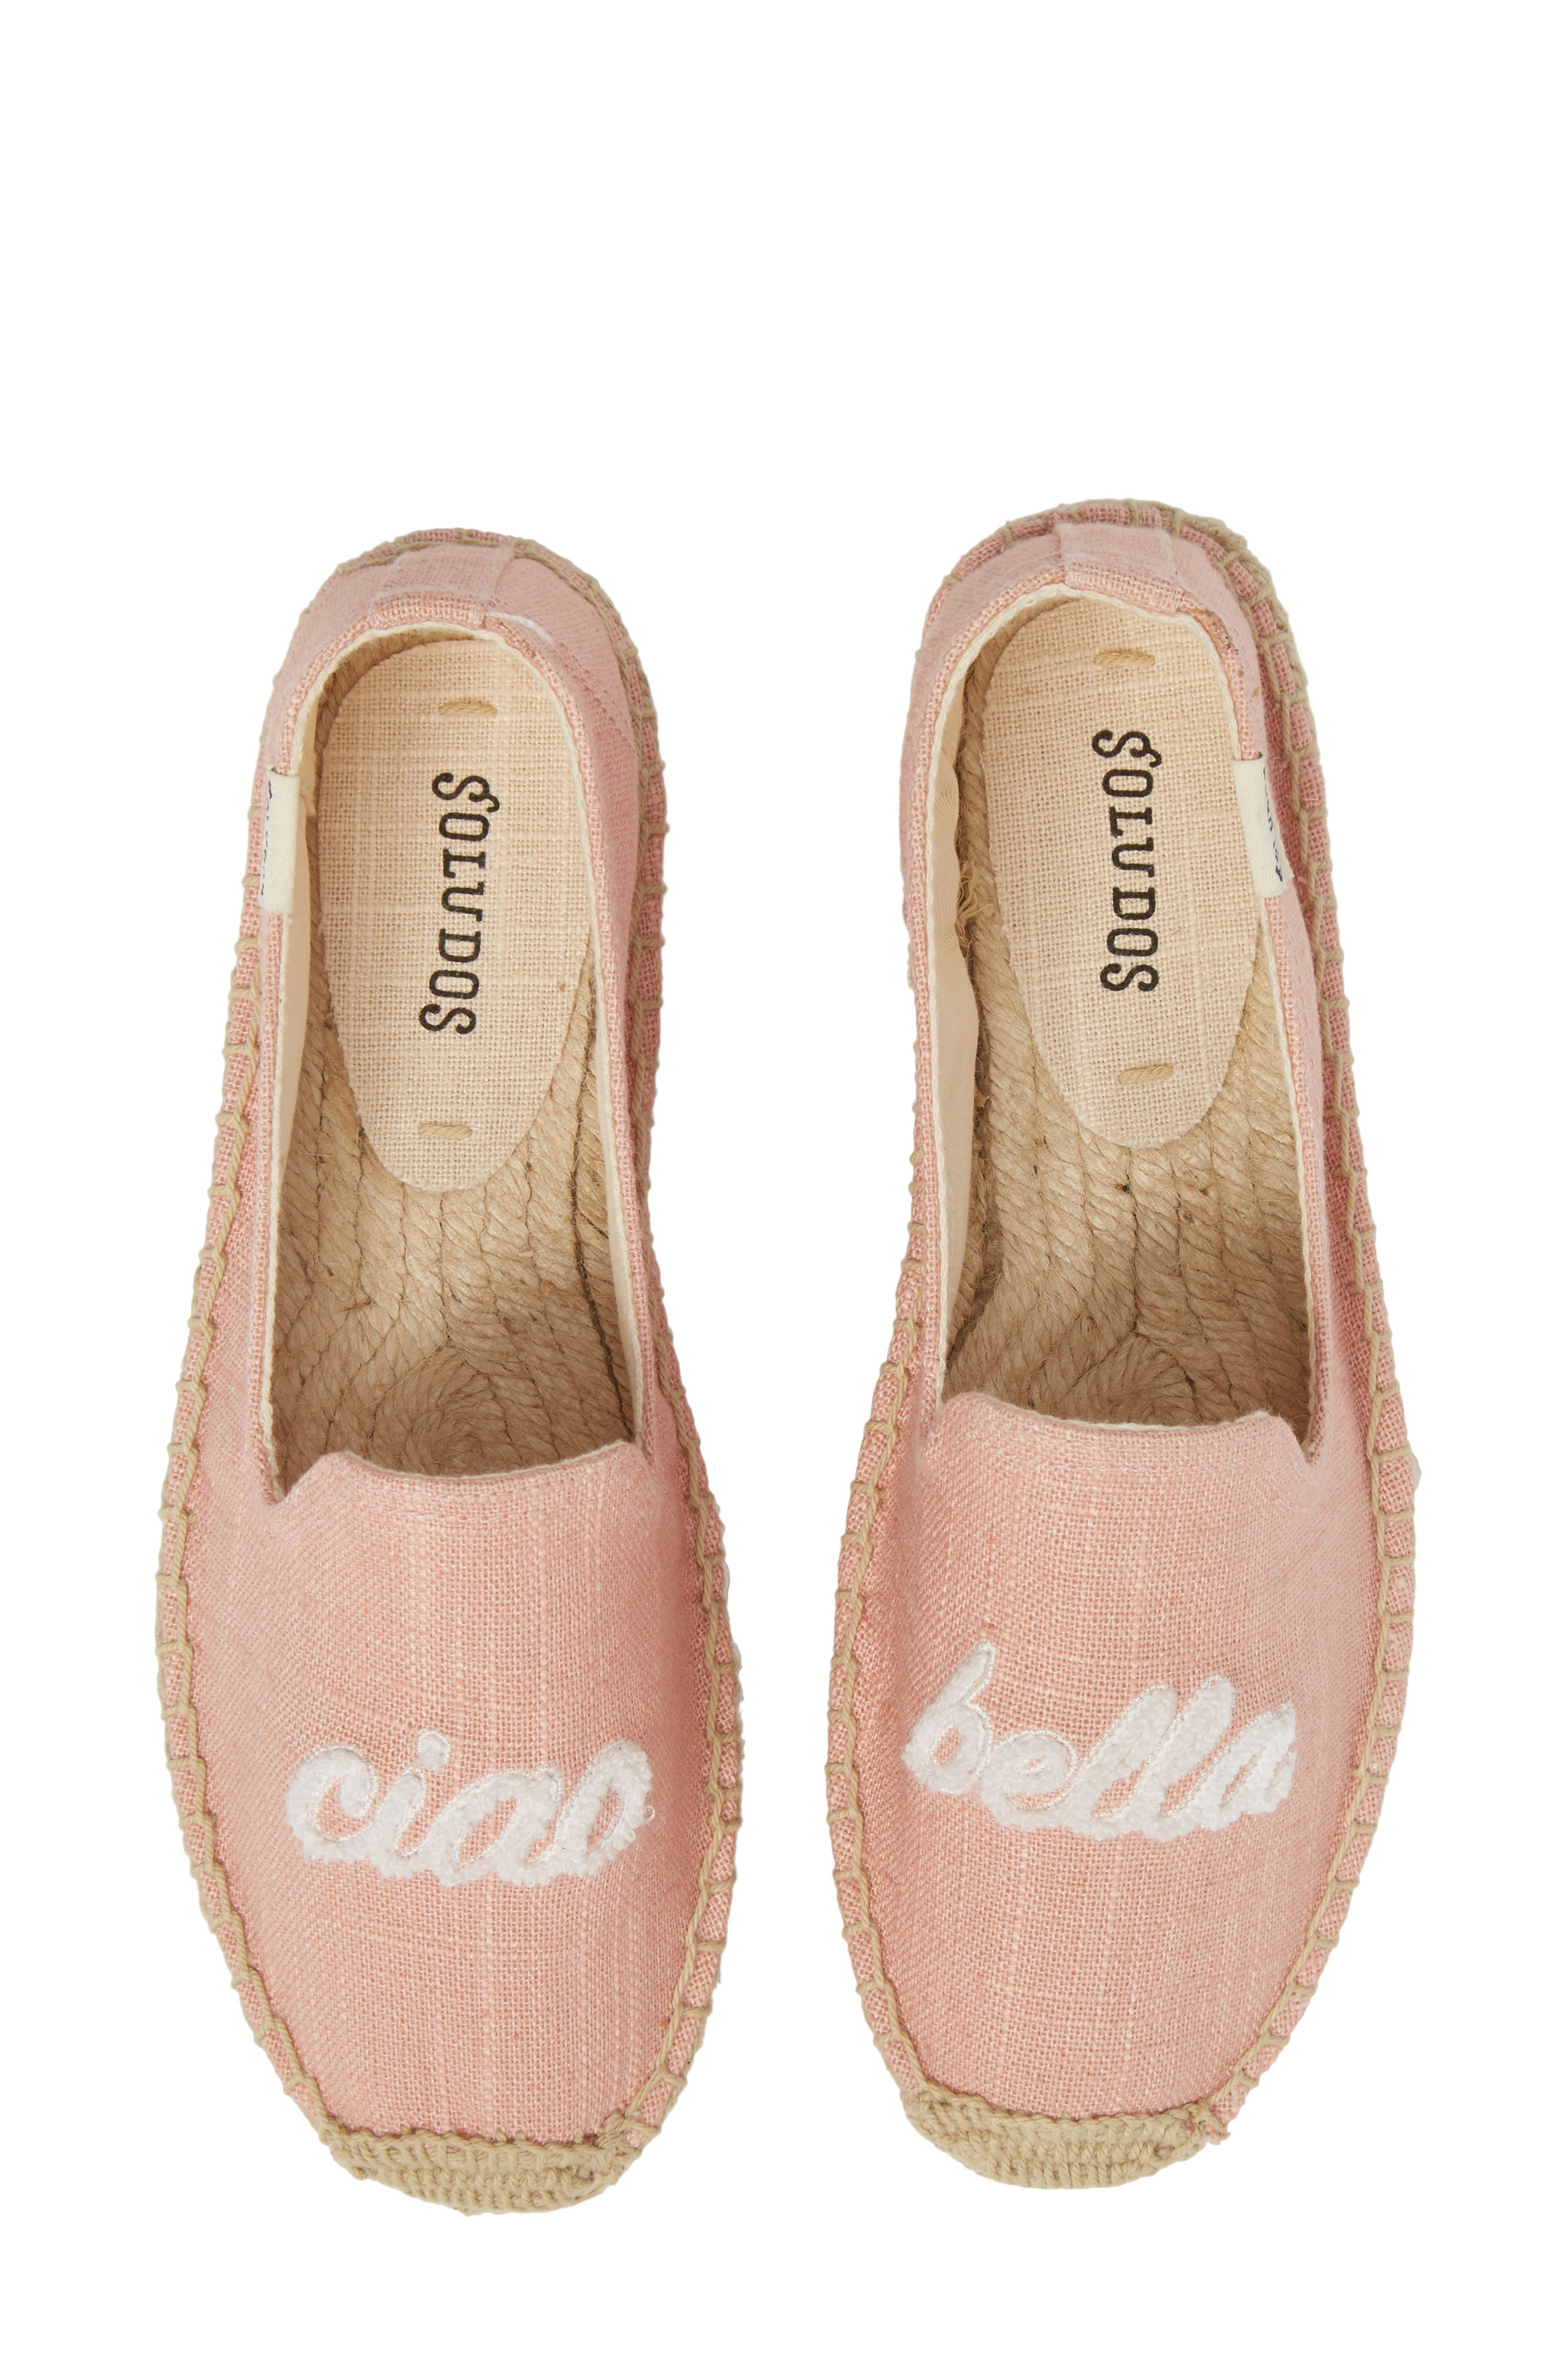 Ciao Bella Espadrille Flat,                         Main,                         color, DUSTY ROSE FABRIC